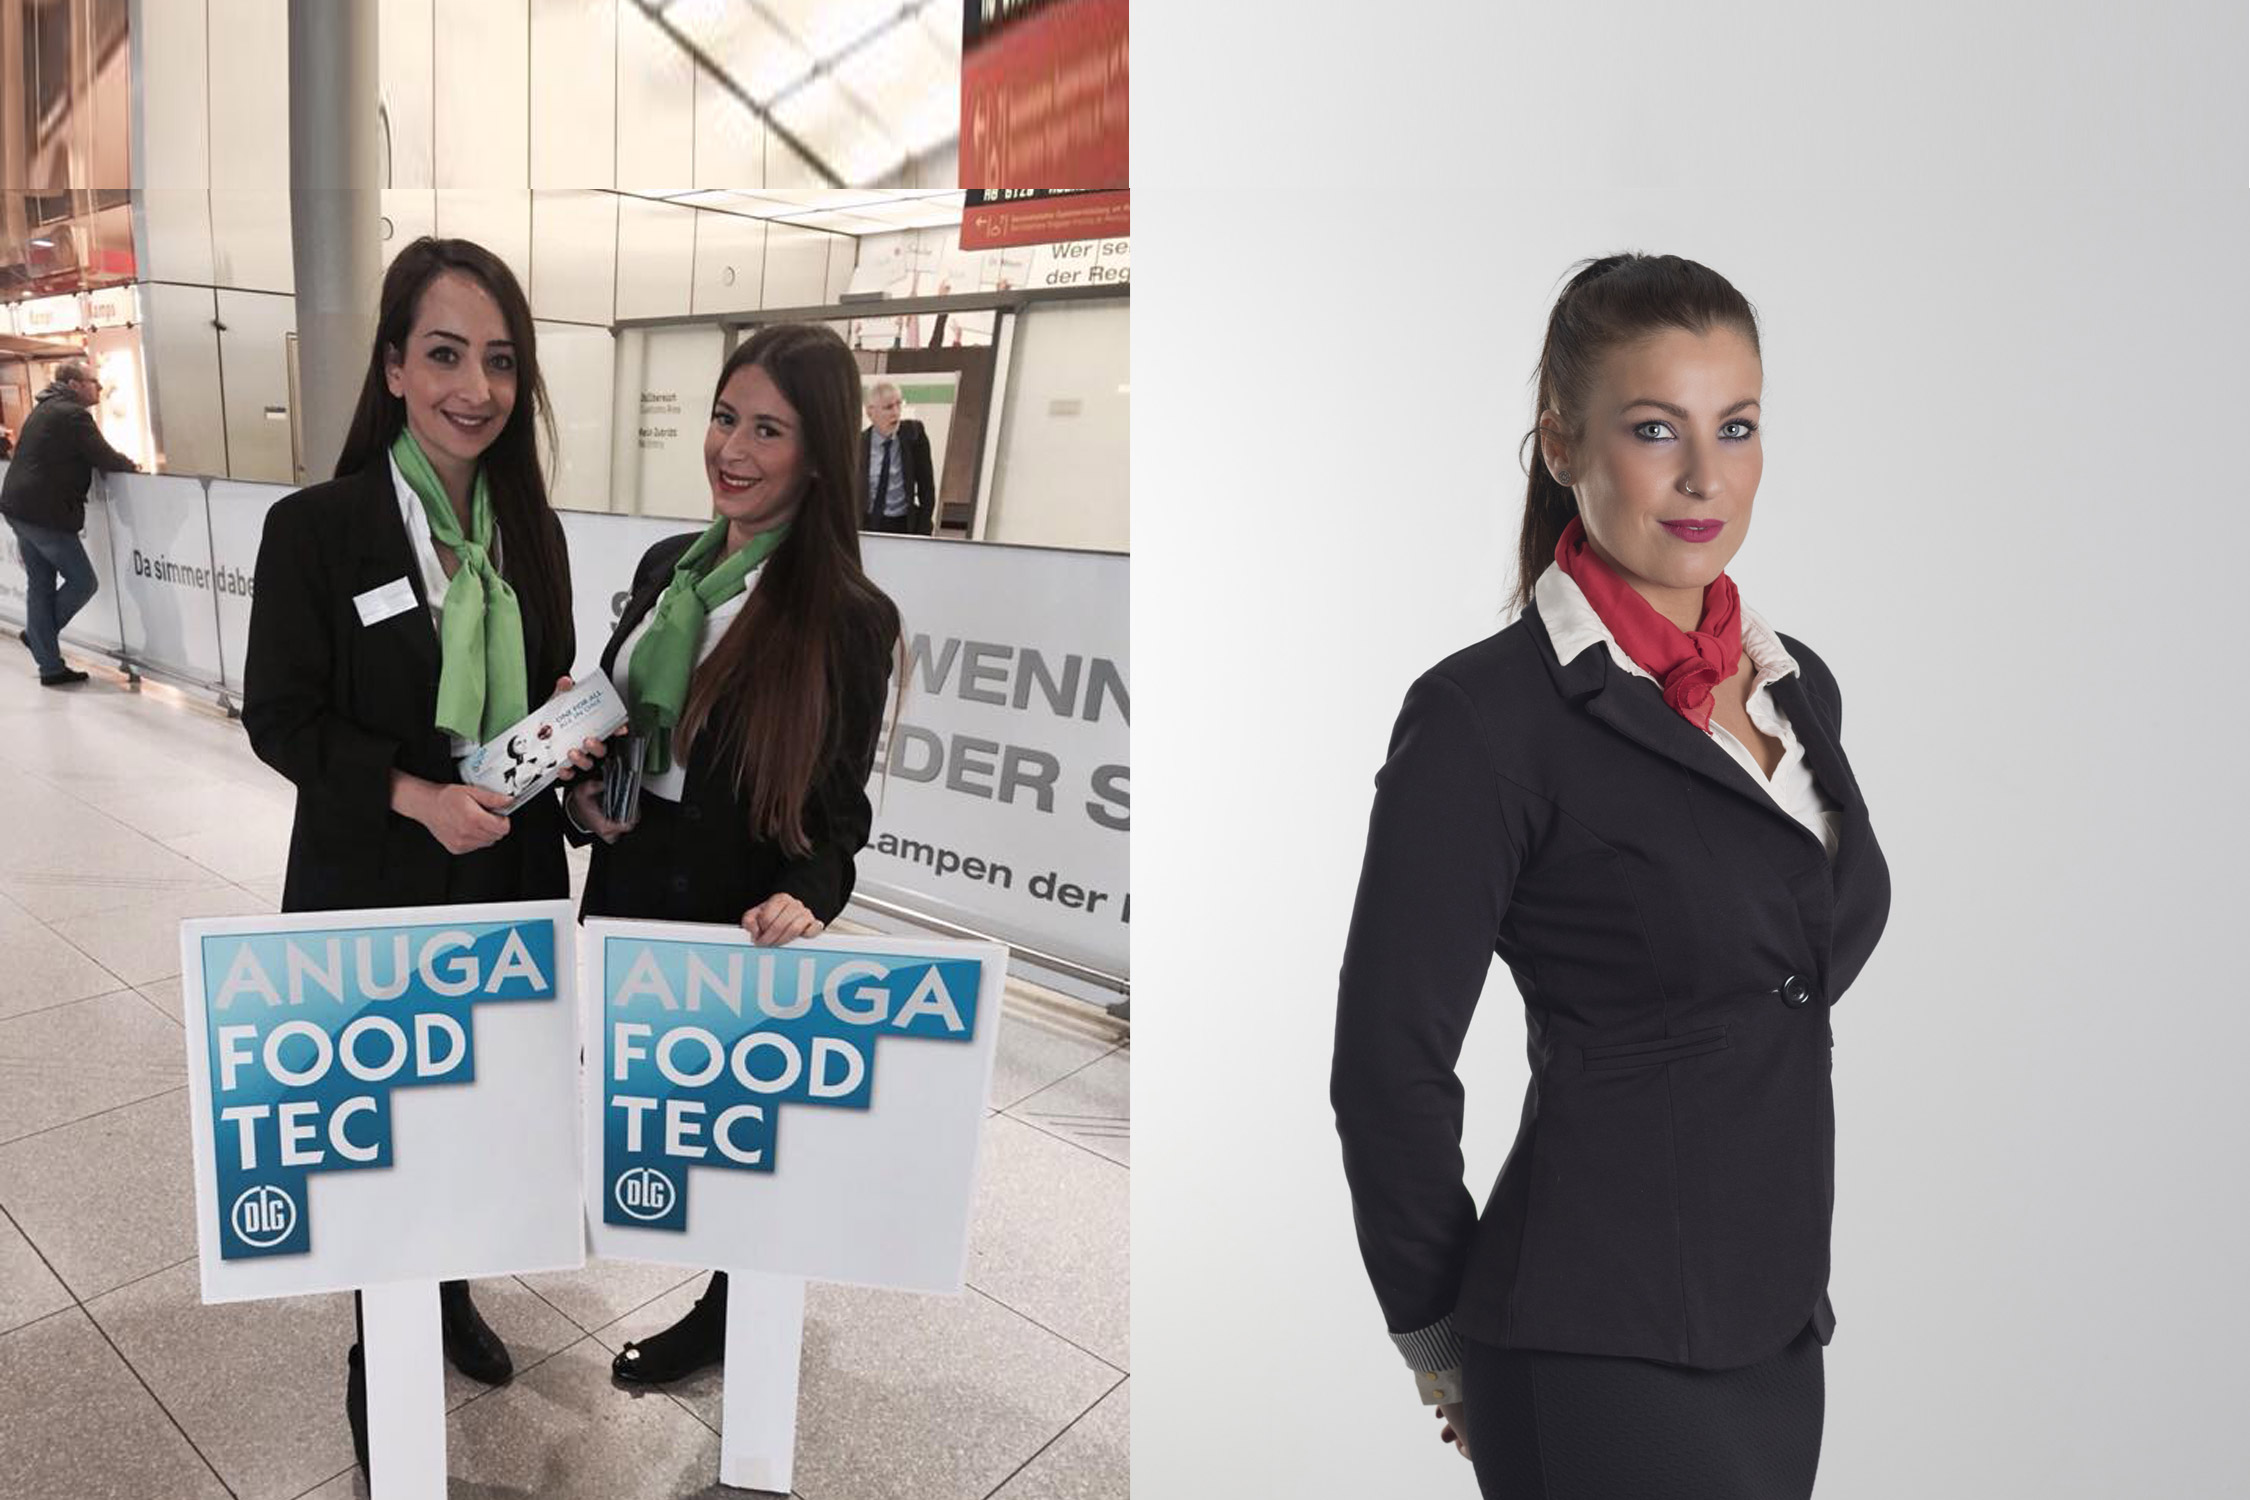 Hostessen, Host, Laufkostüme, Personal, Messe Briefing, Hostessen Köln, geschultes Personal, Messepersonal, Eventhostessen, Veranstaltungshostessen, Hostess, trade fair hostess, Promotion, Servicekraft, Kellner, Promotionagentur, Servicepersonal